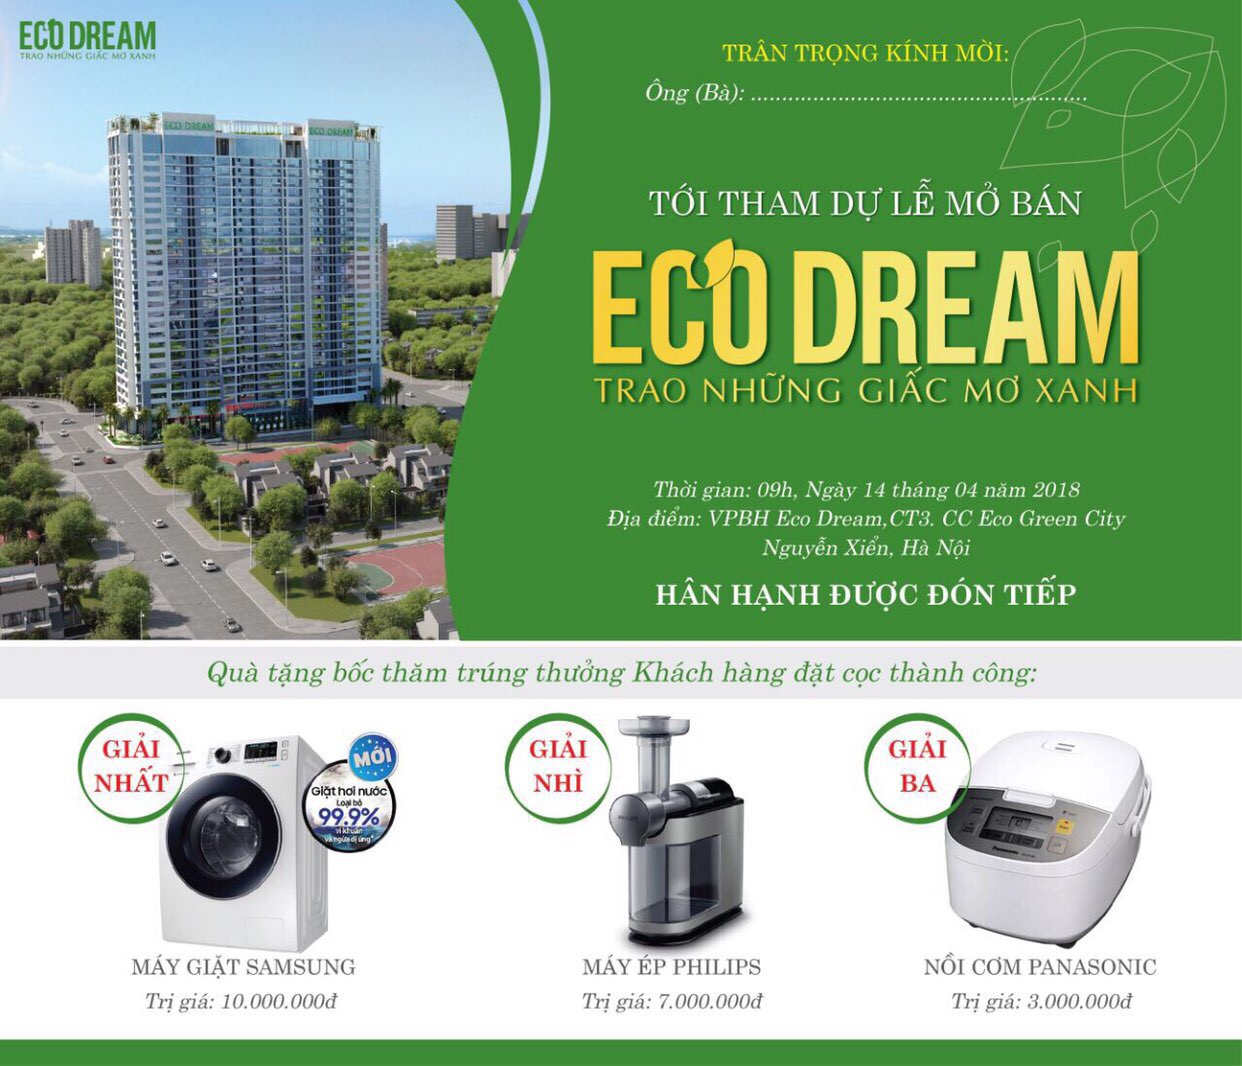 mo-ban-eco-dream